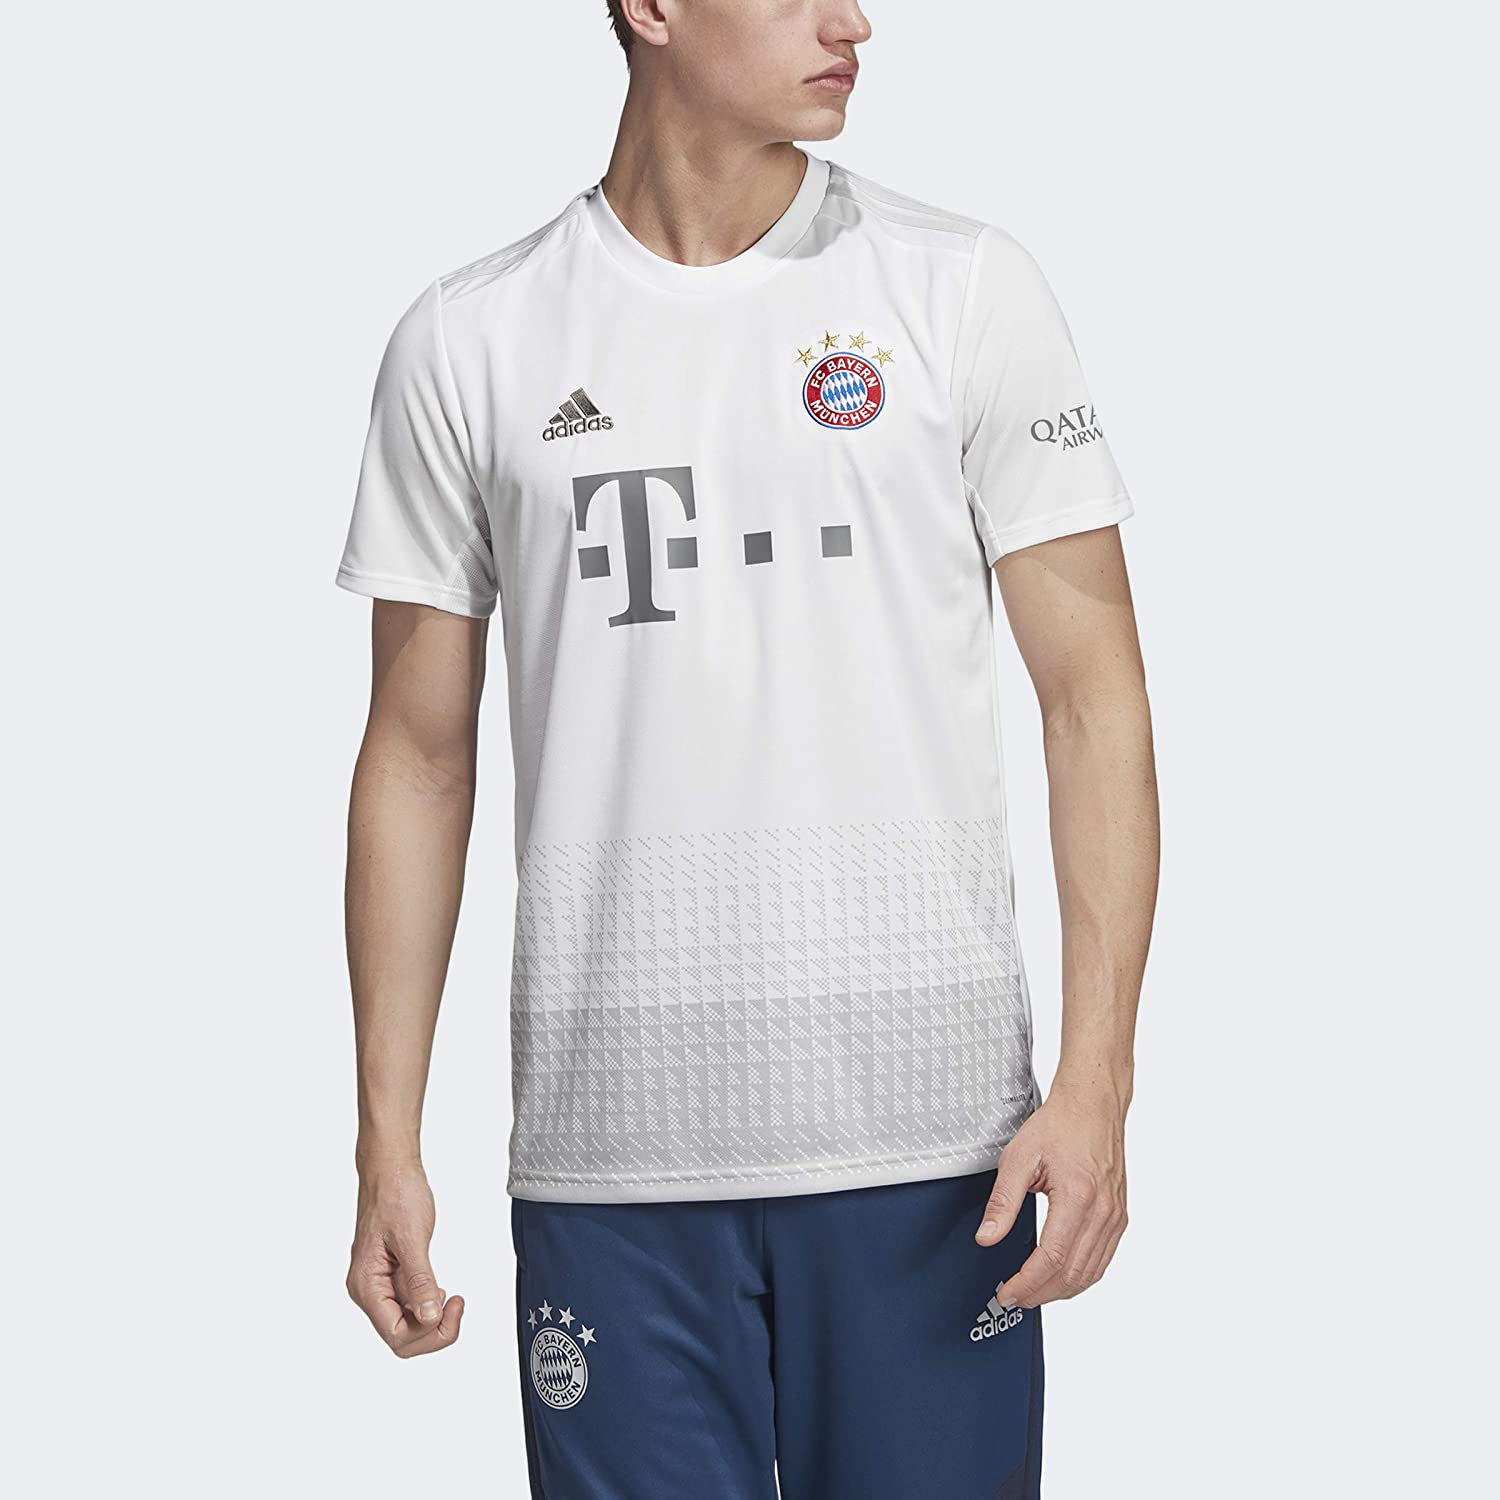 Amazon Com Adidas 2019 20 Fc Bayern Away Jersey White Grey M Clothing